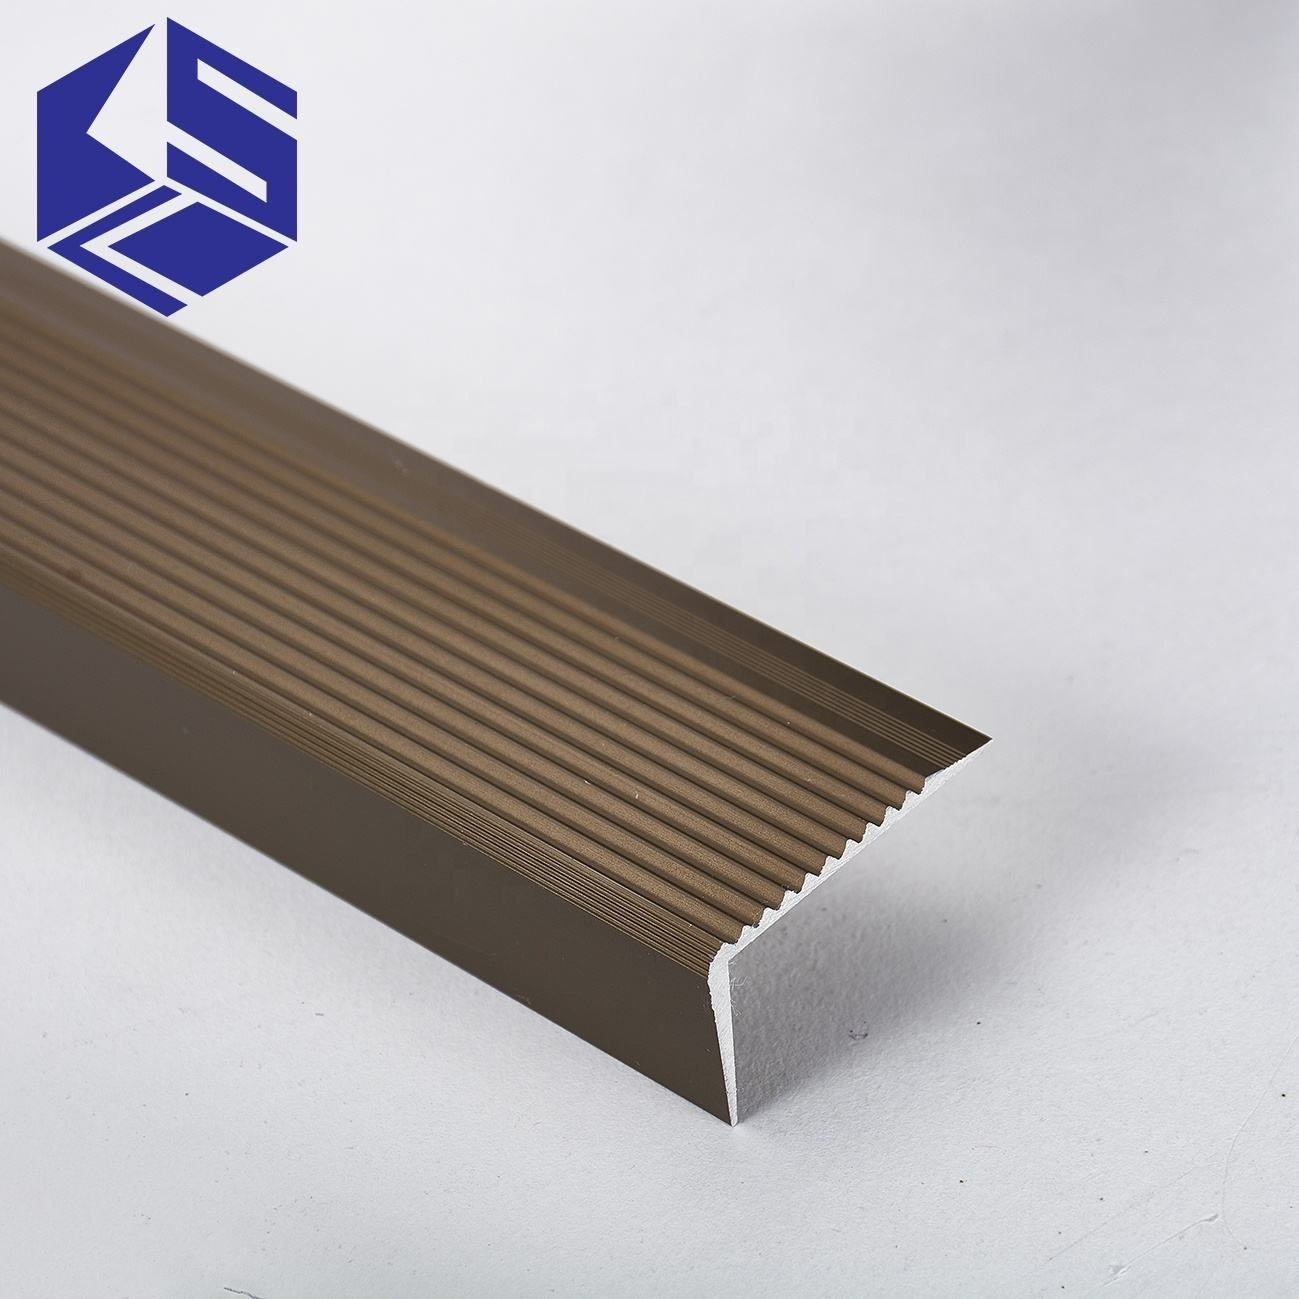 China Outdoor Stair Tread China Outdoor Stair Tread Manufacturers And Suppliers On Alibaba Com